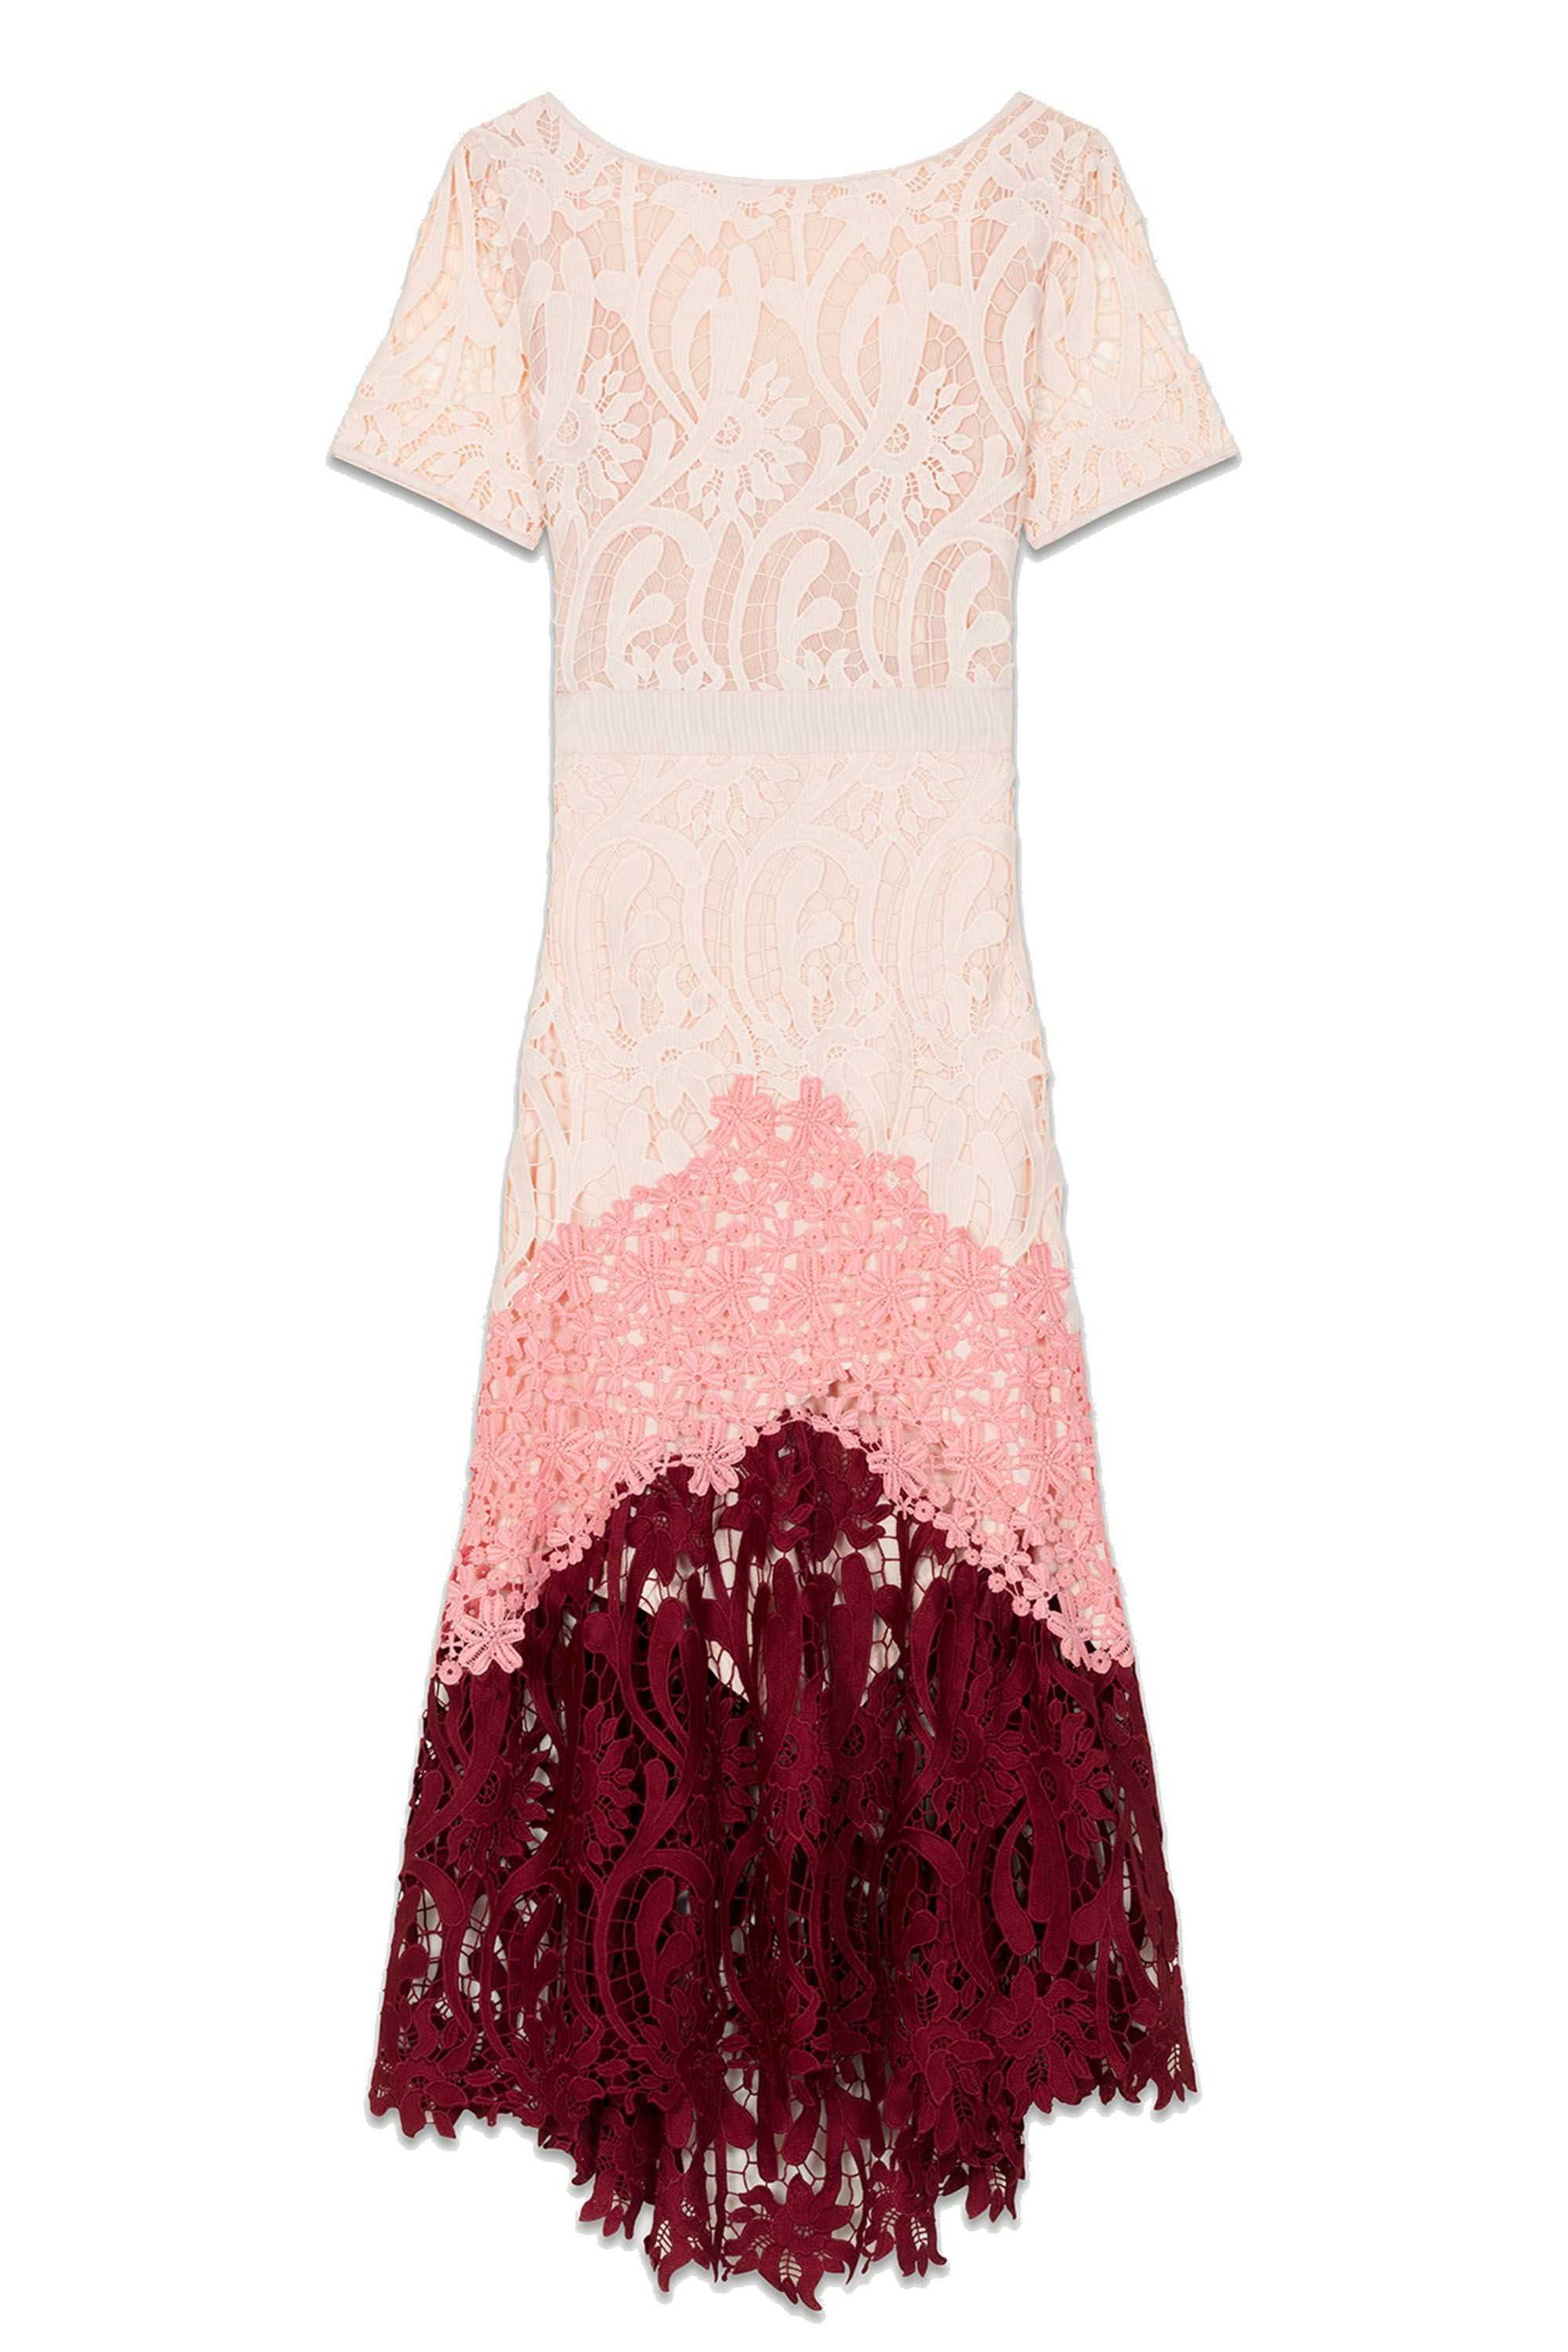 What To Wear To A Summer 2018 Wedding 15 Wedding Guest Dresses To